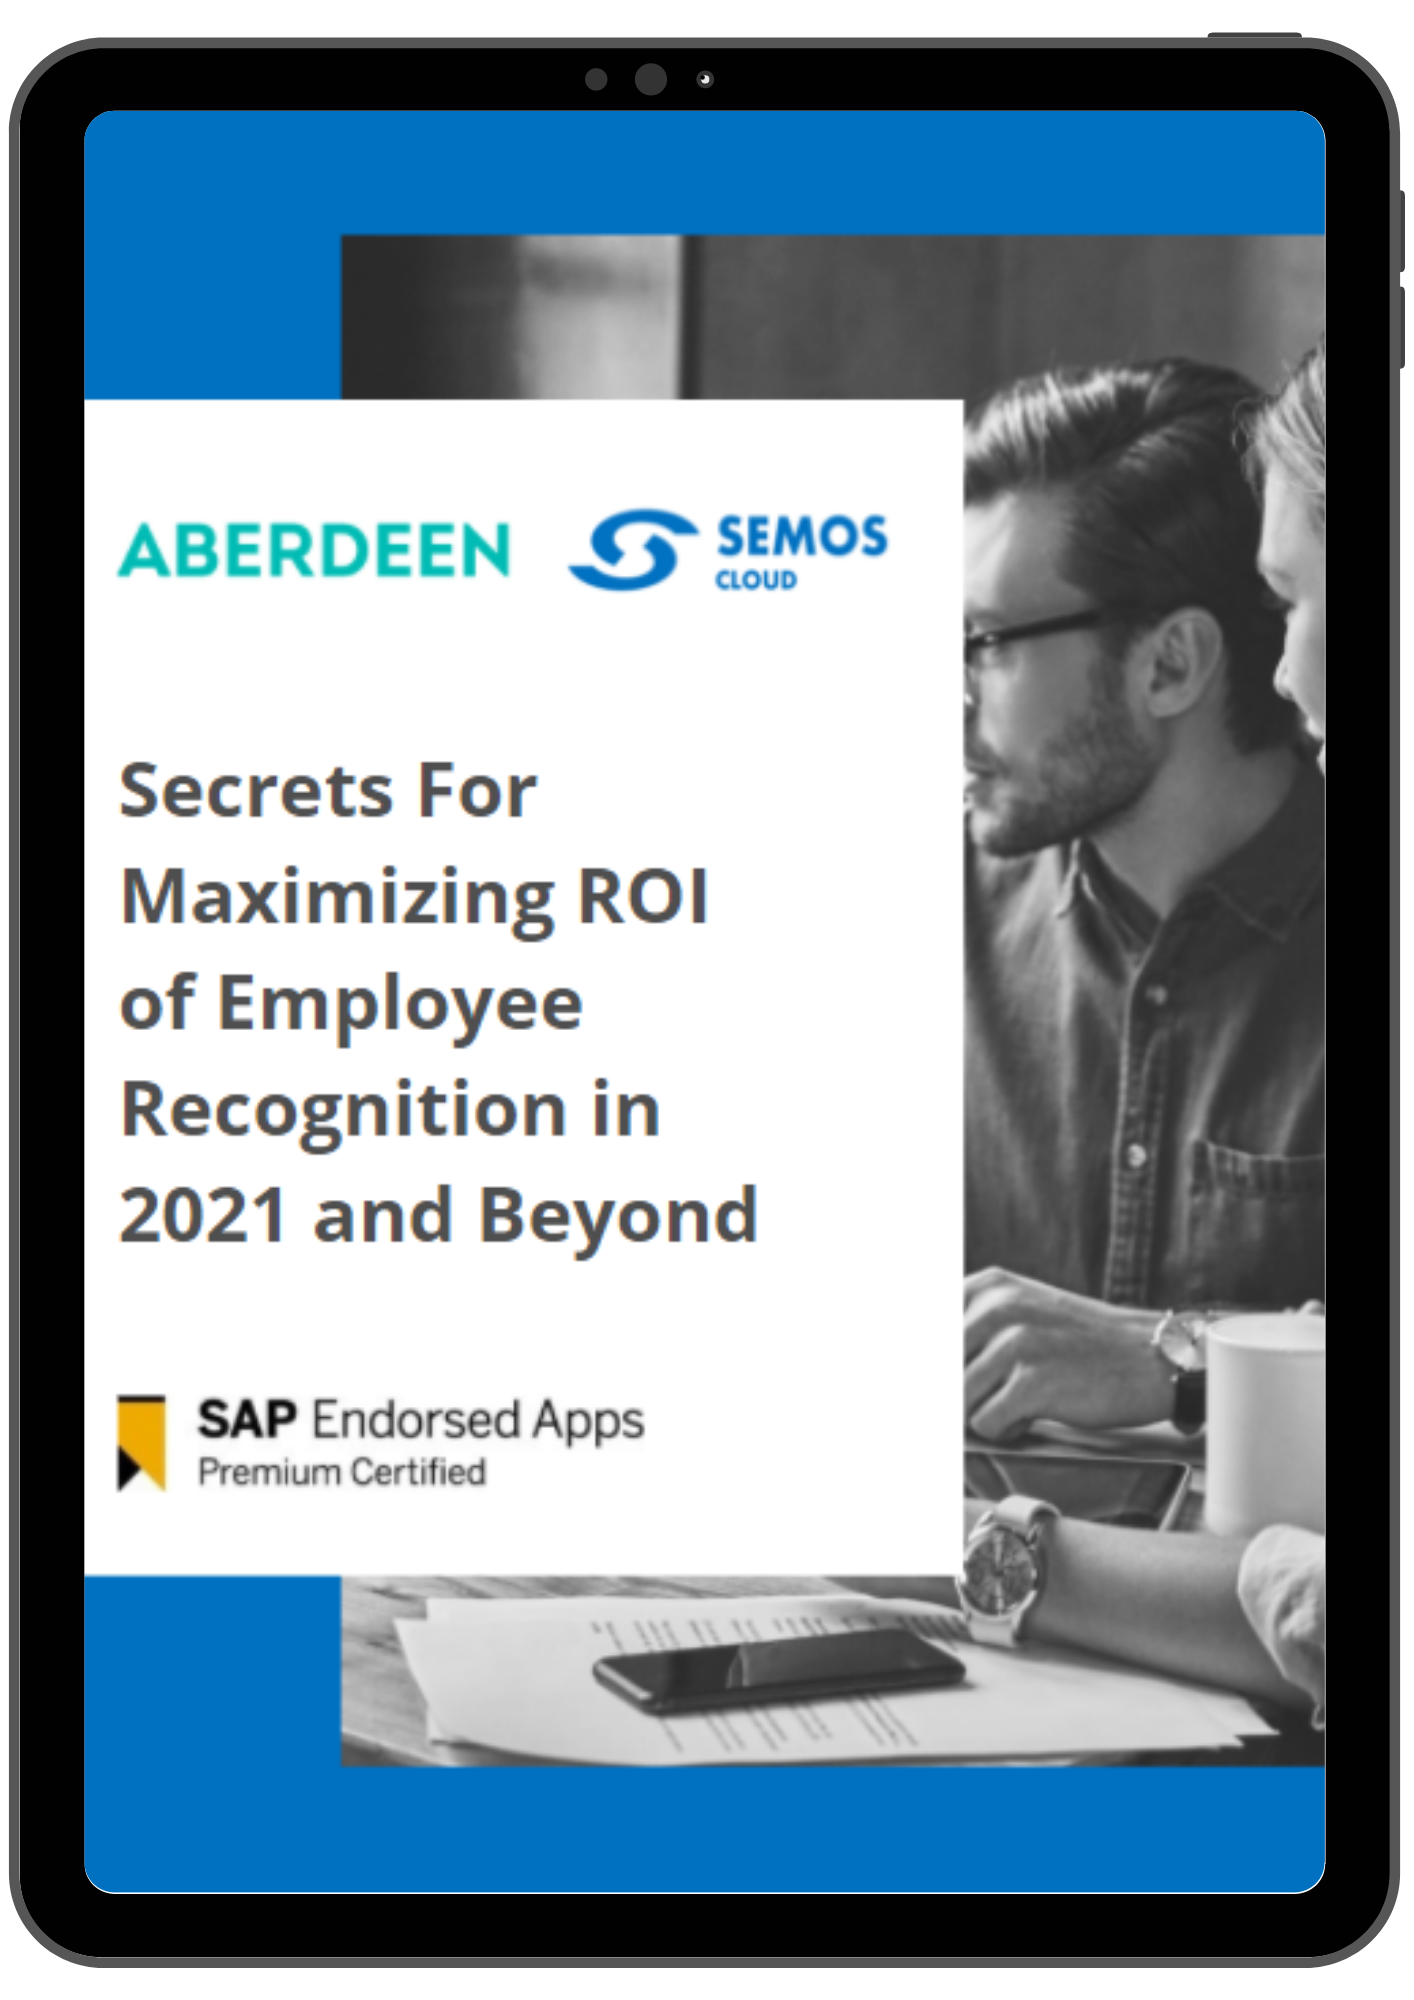 Aberdeen-research-employee-recognition-roi